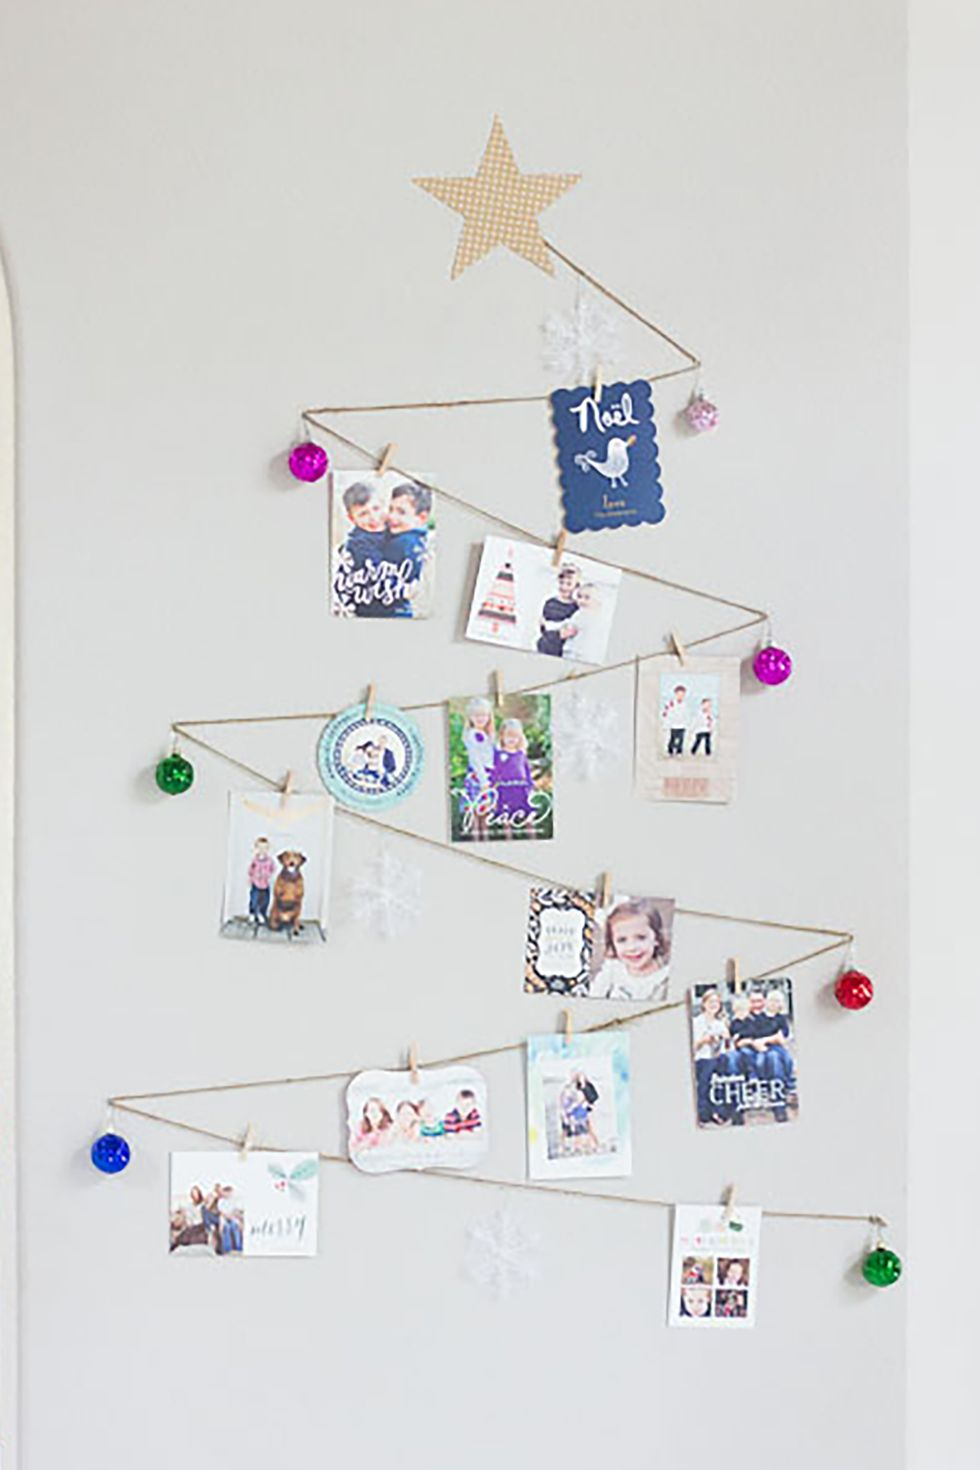 Twine Wall Tree Card Holder: These 25 DIY Christmas Card Holders - That Double As Festive Decor will allow you to beautifuly display your cards and will also give you some great decor.